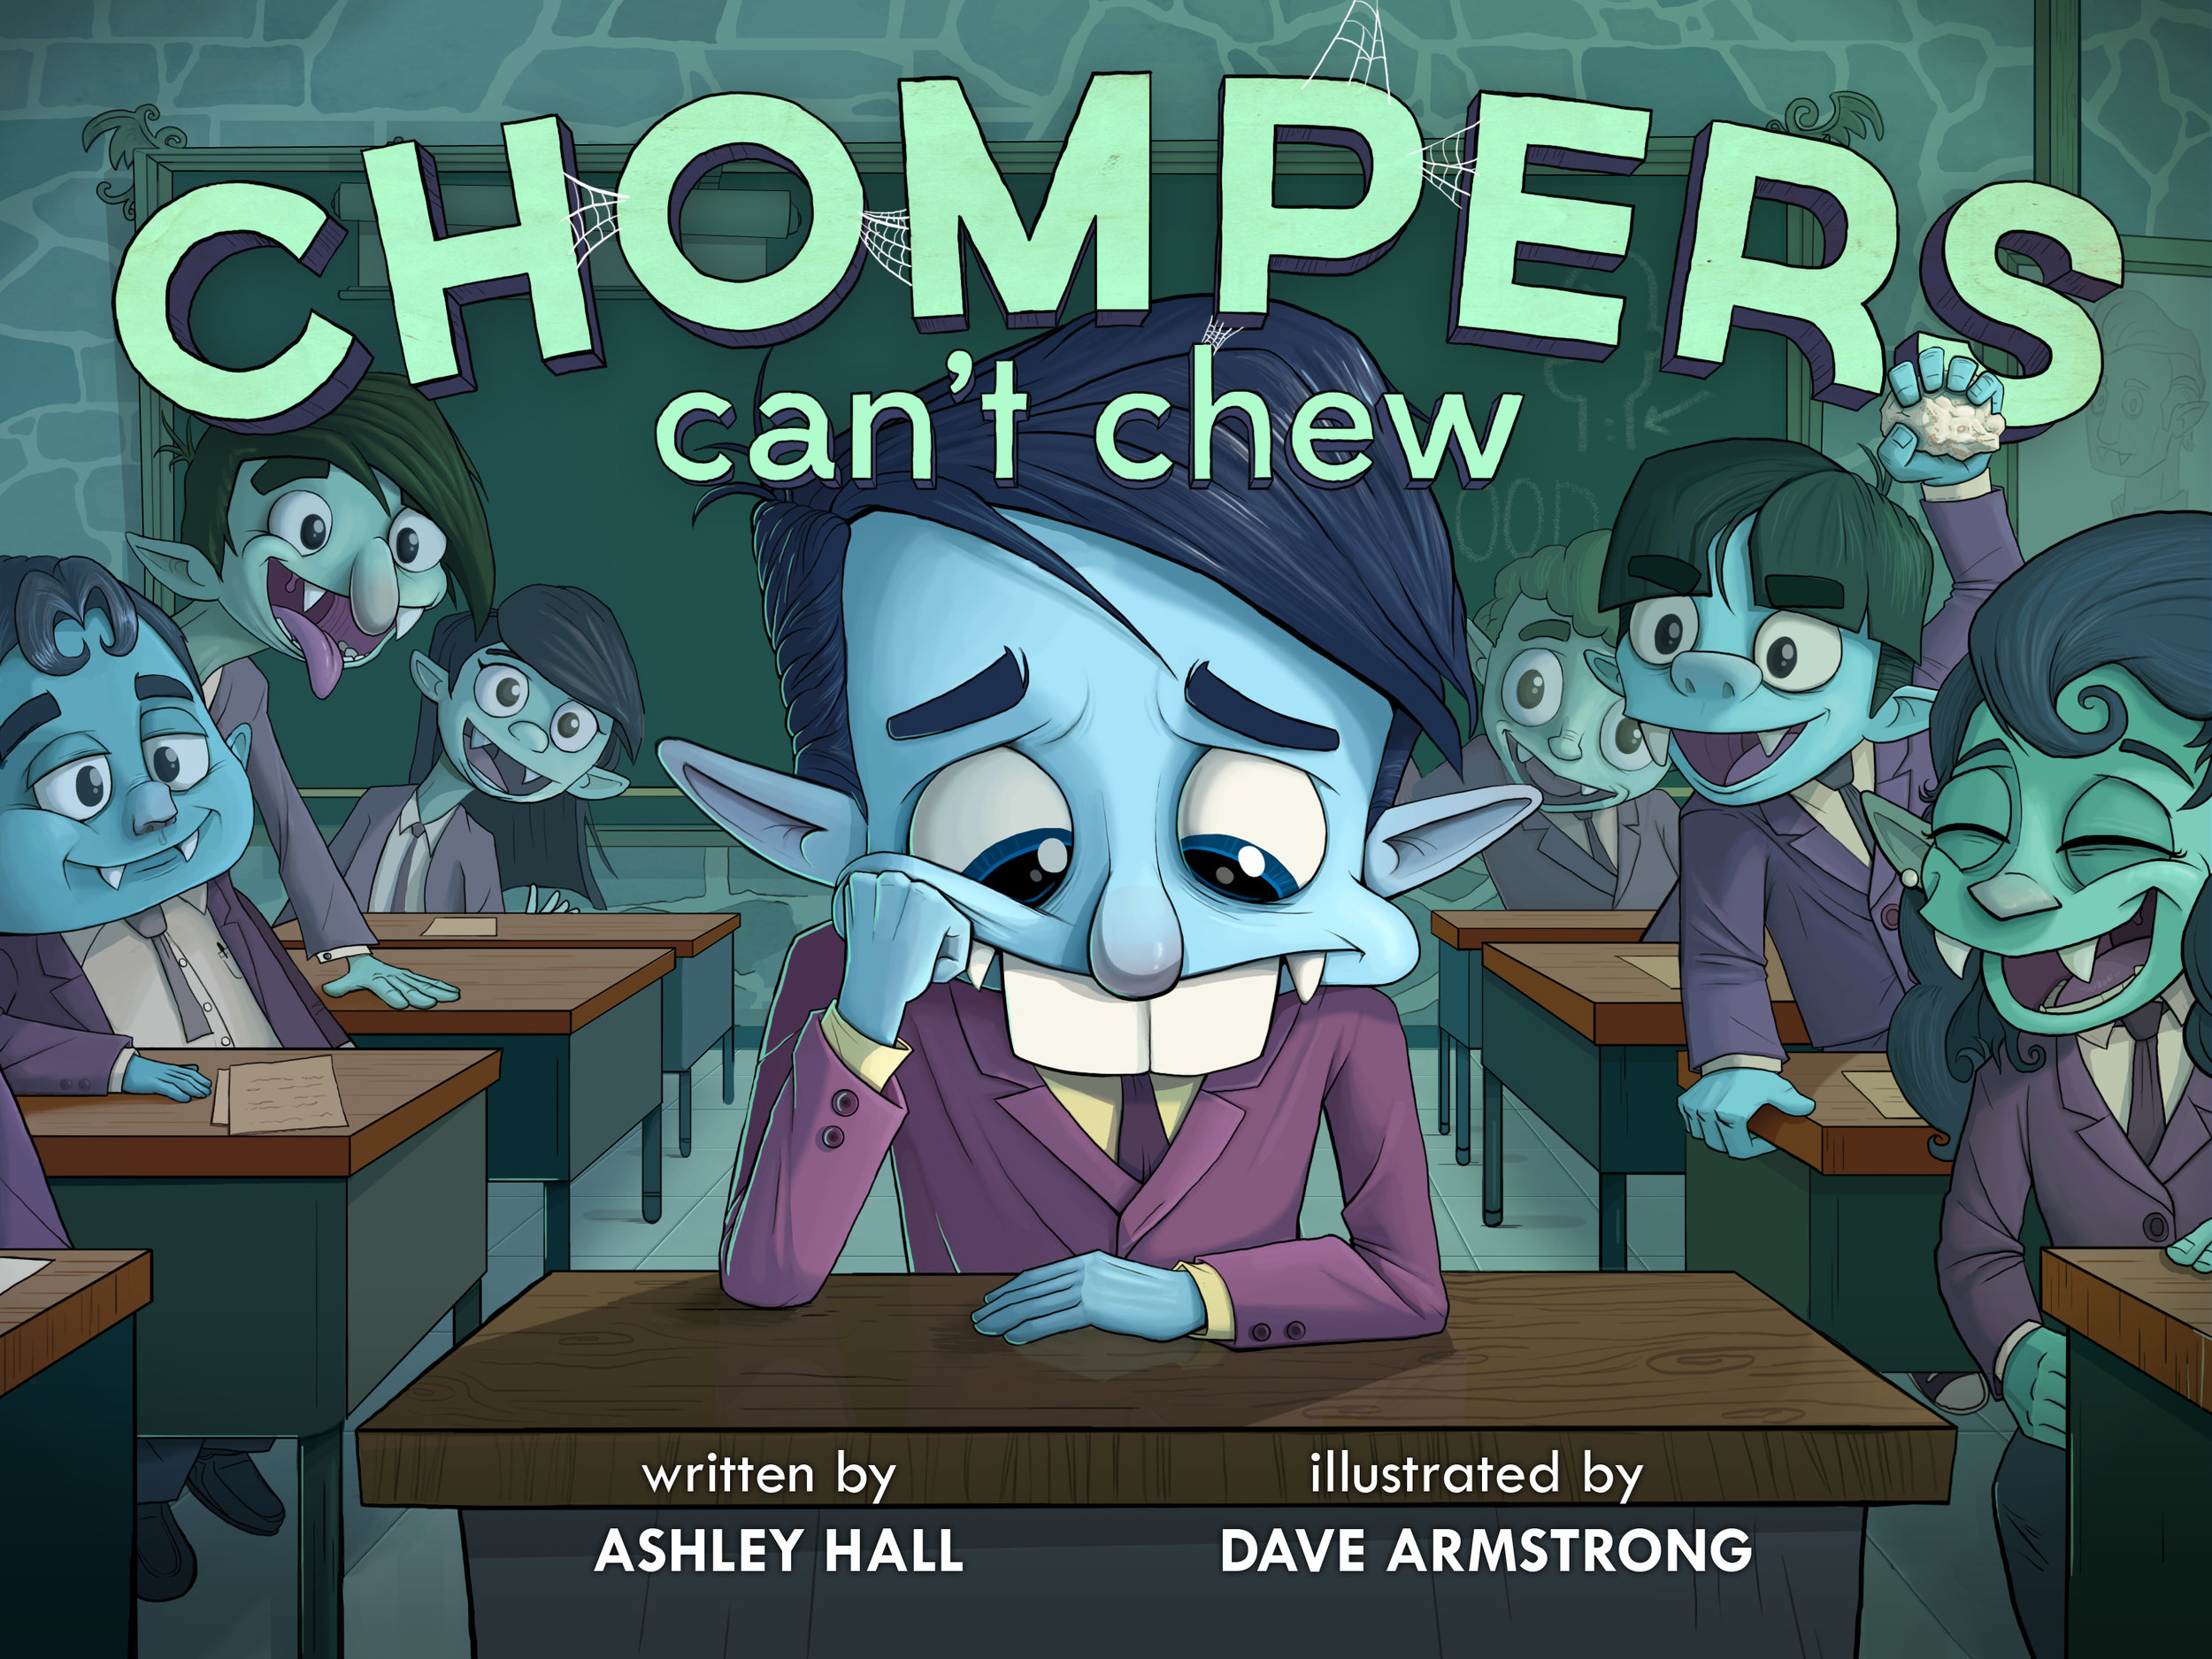 DaveArmstrongIllustration_Chompers3.jpg